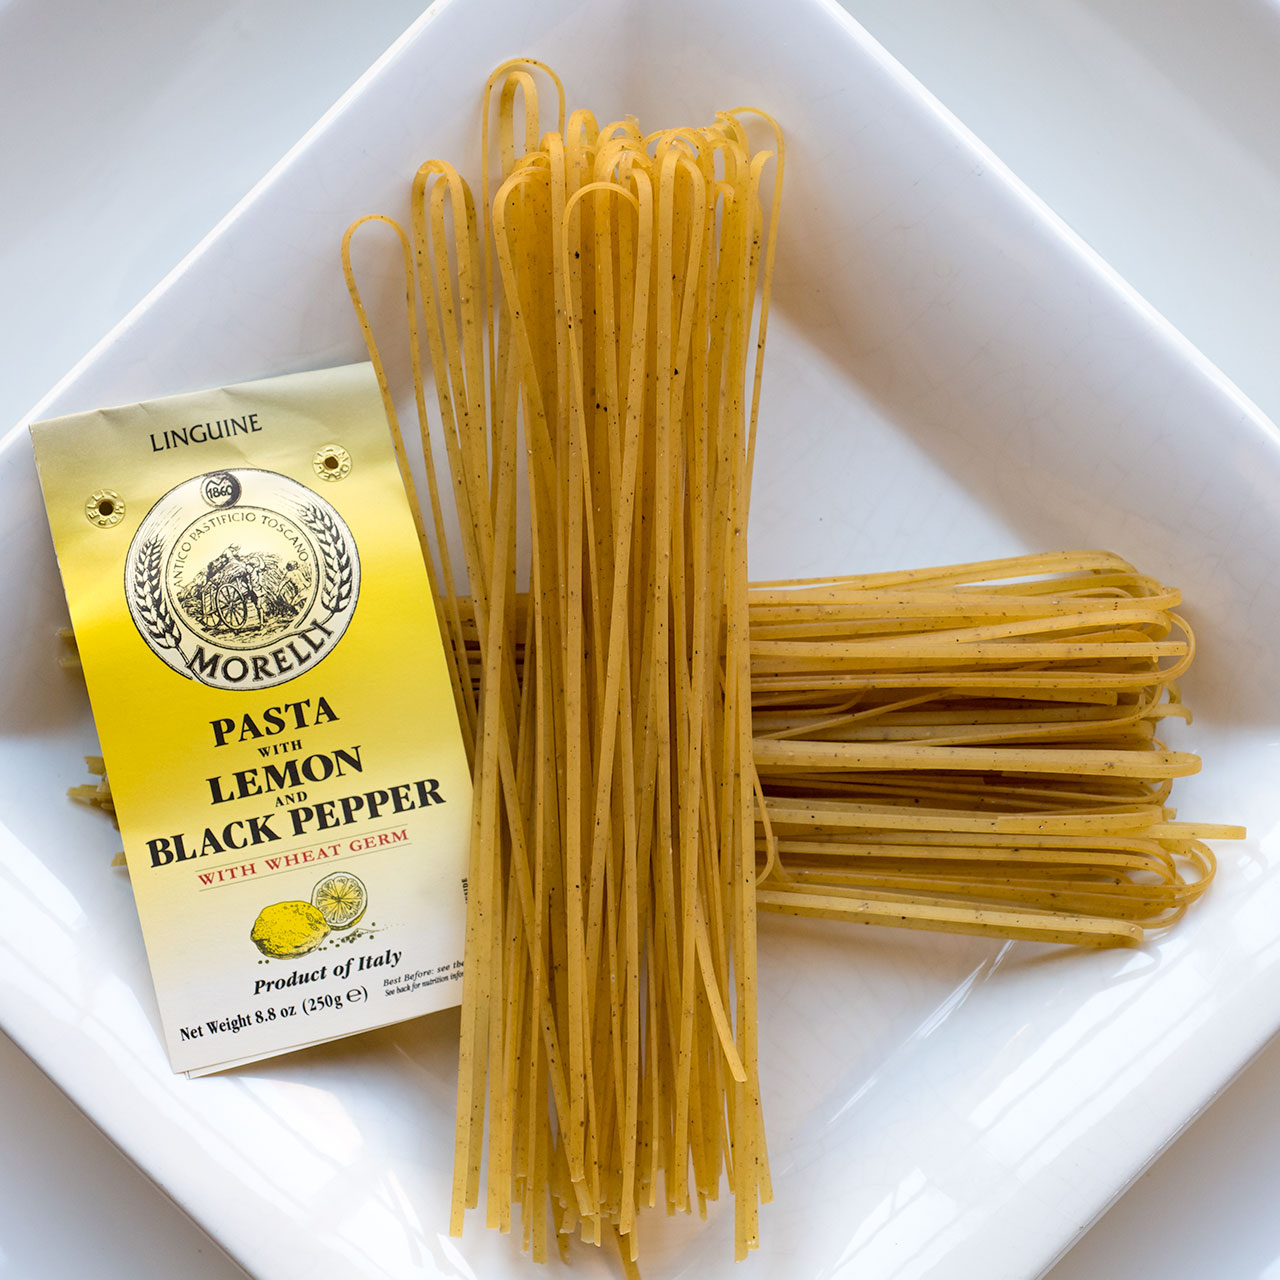 Morelli Pasta w Lemon and Black Pepper